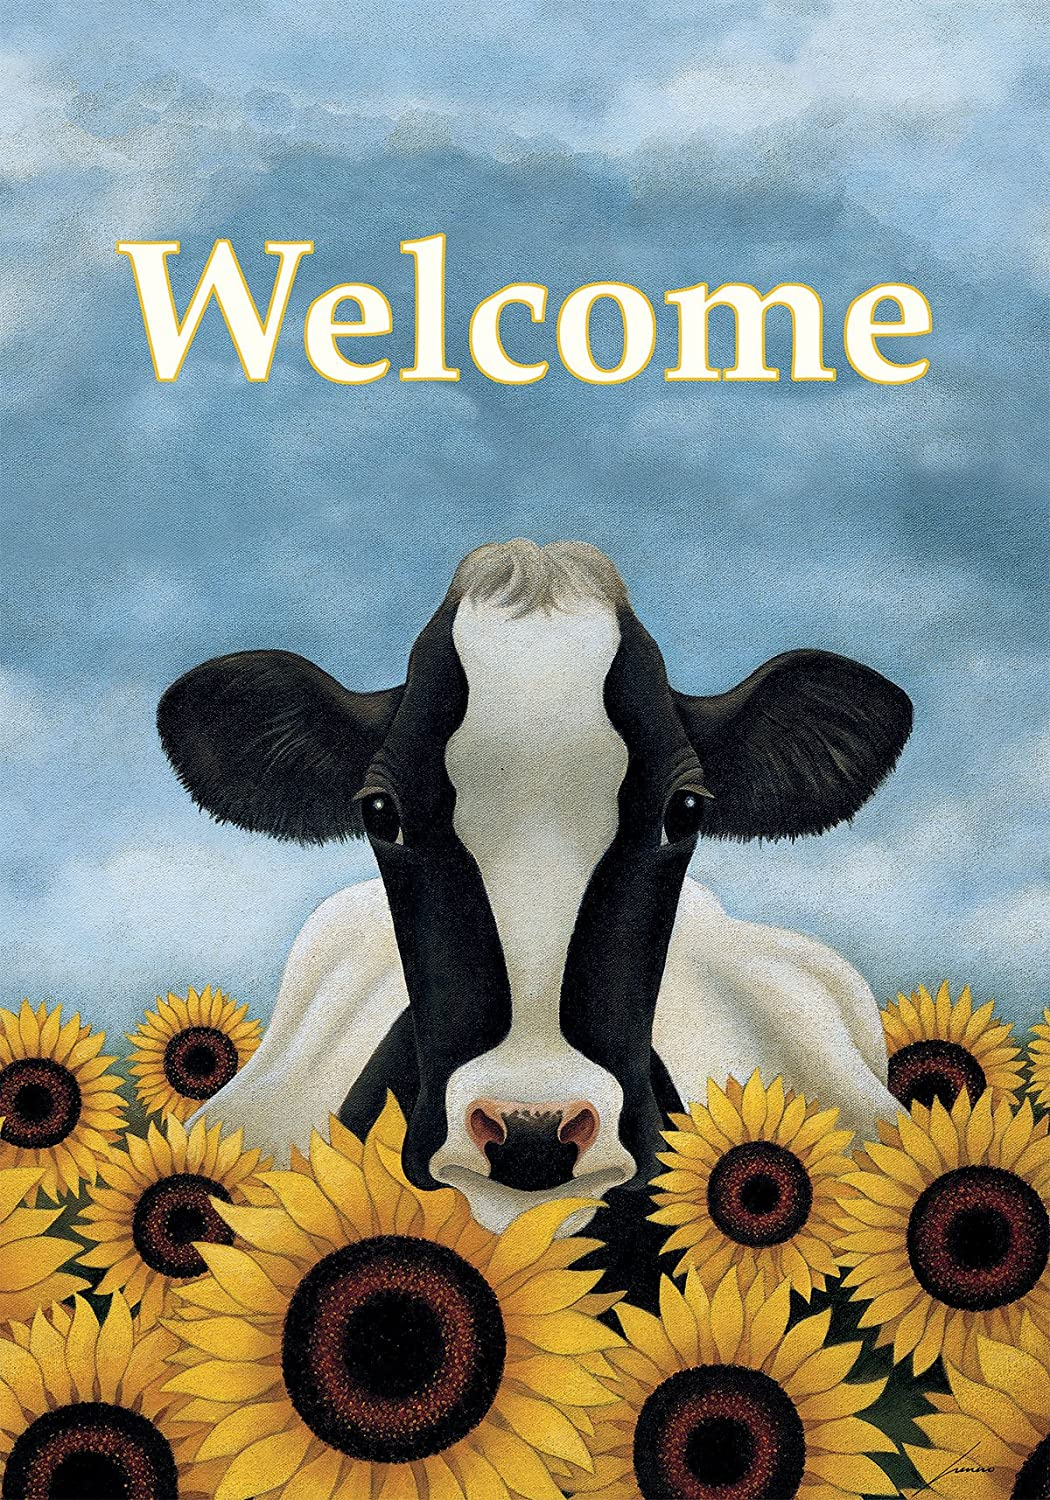 """LANG - Large Garden Flag -""""Surrounded by Sunflowers """", Exclusive Artwork by Lowell Herrero - All-Weather, Fade-Resistant Polyester - 28"""" w x 40"""" h"""